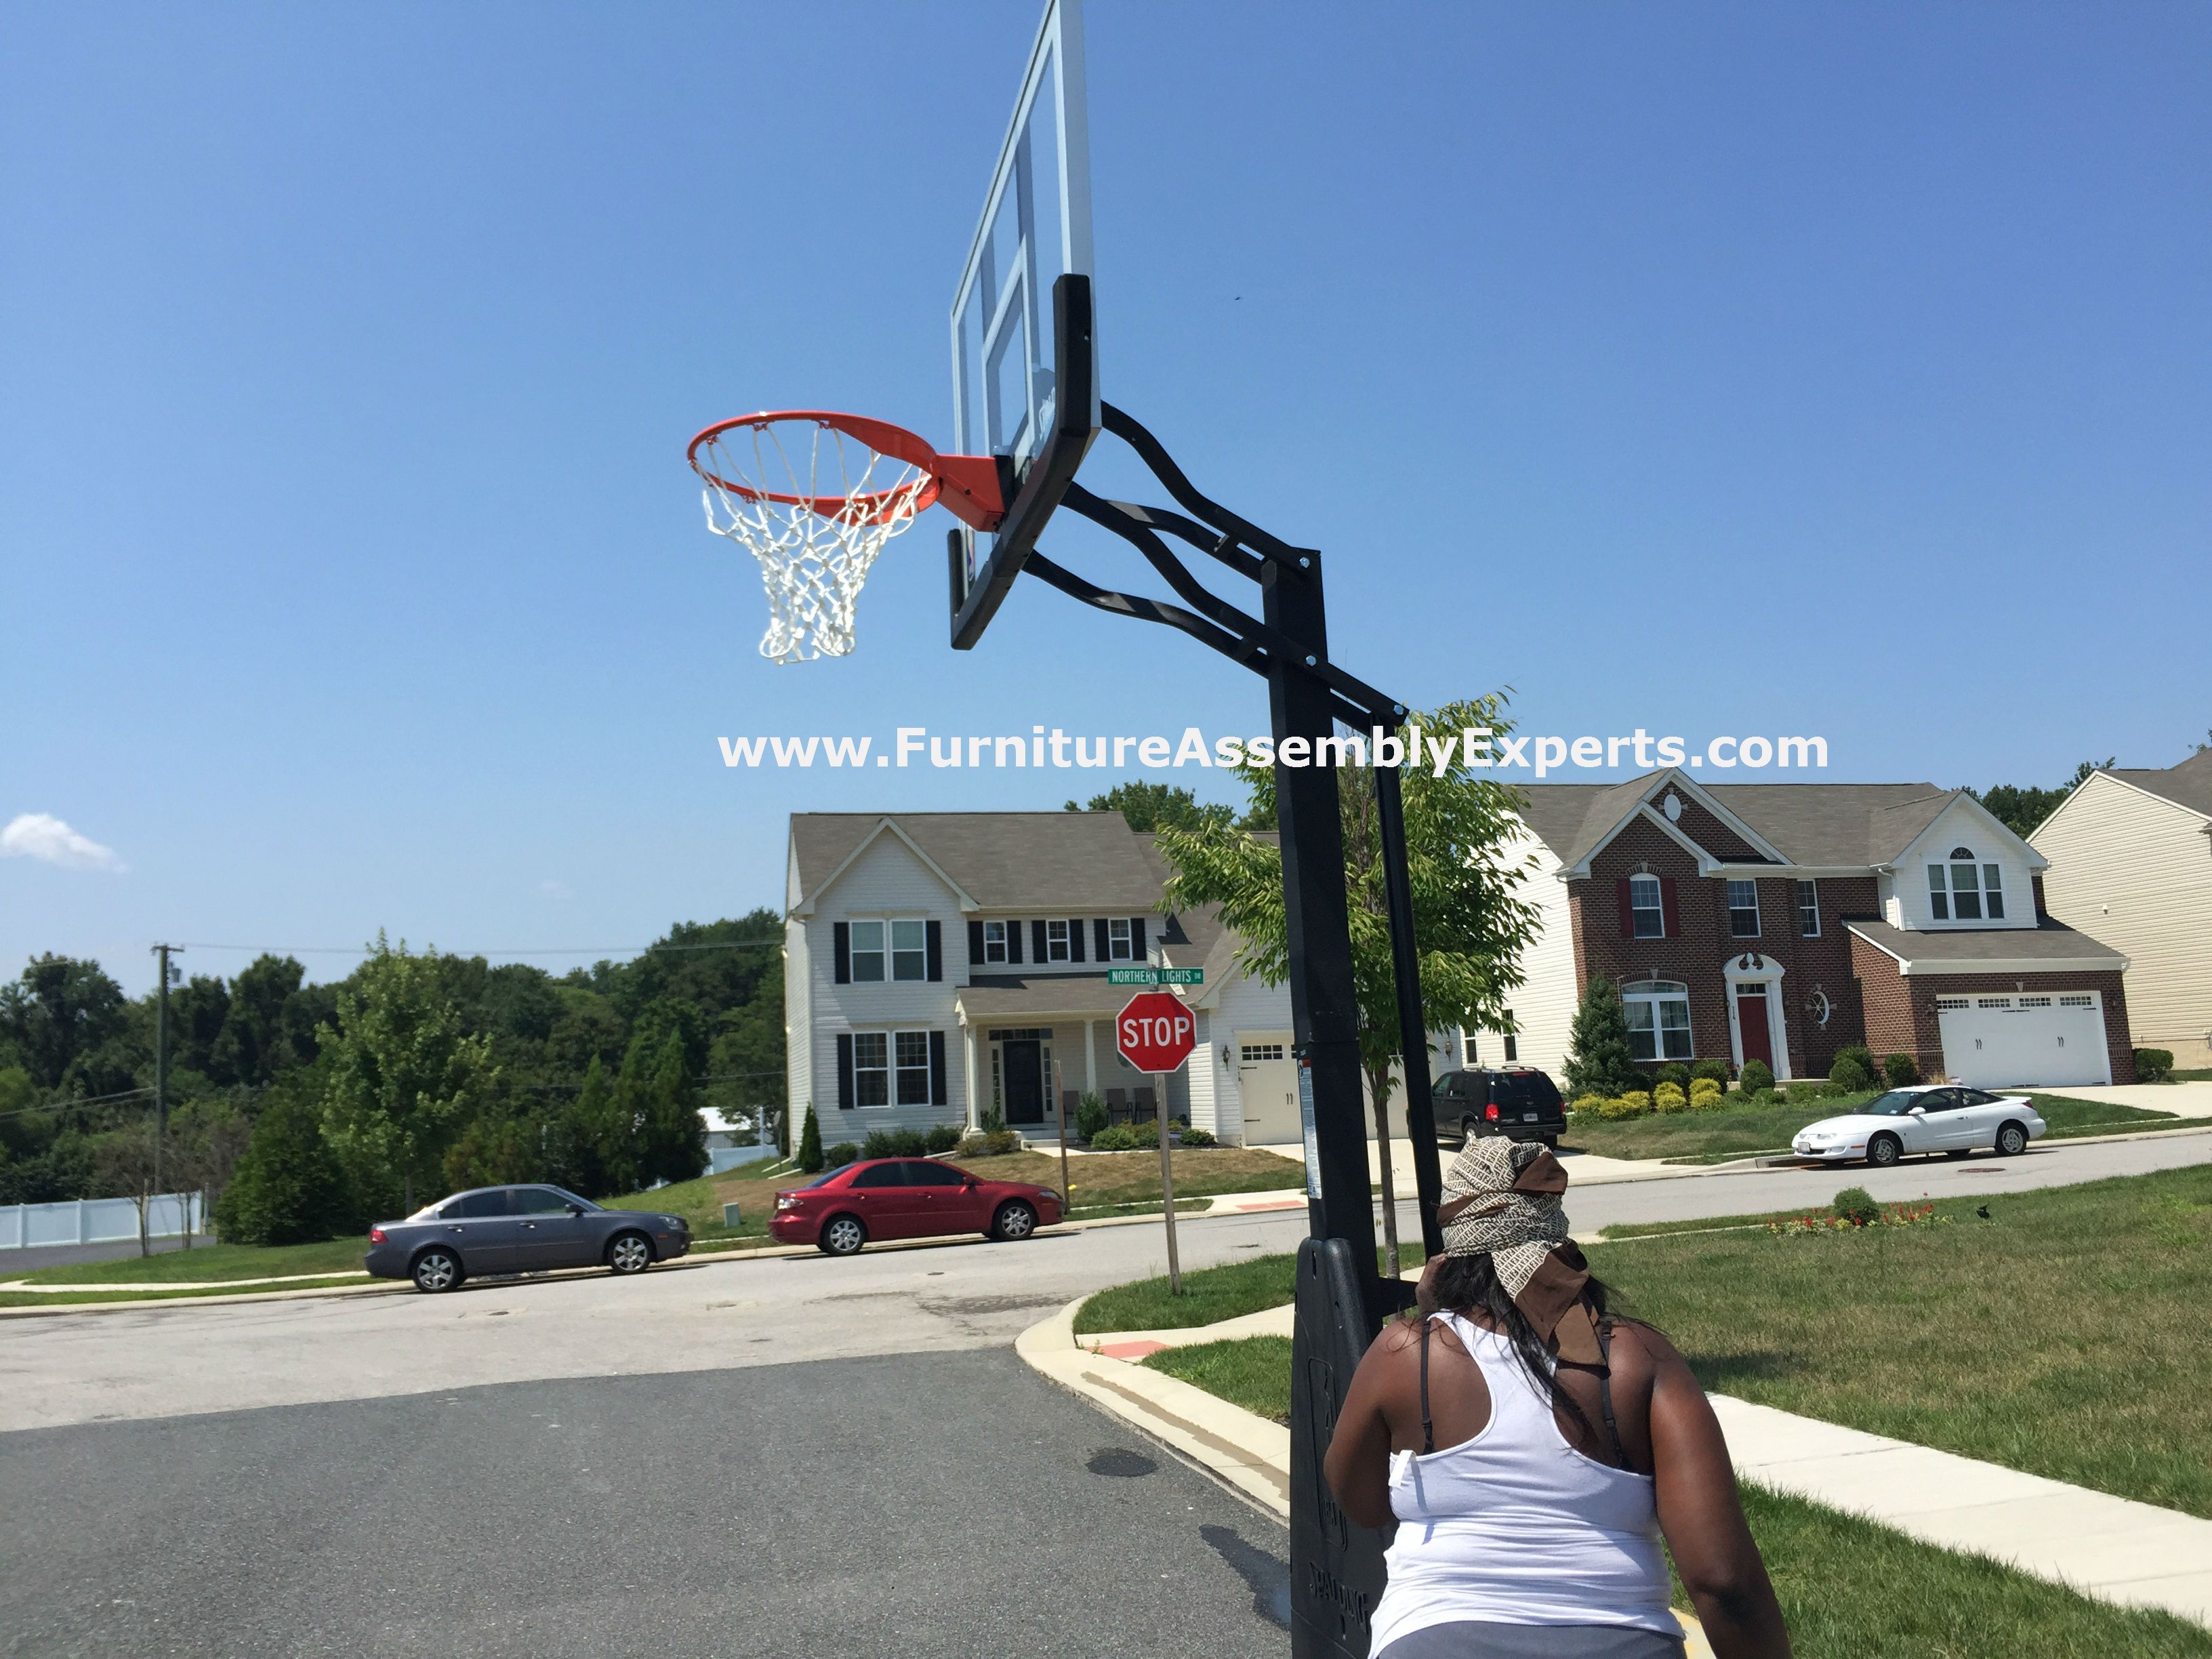 Spalding Portable Basketball Hoop From Walmart Assembled In Aberdeen Md By Furniture Assembly Experts Furniture Assembly Indoor Sauna Portable Basketball Hoop